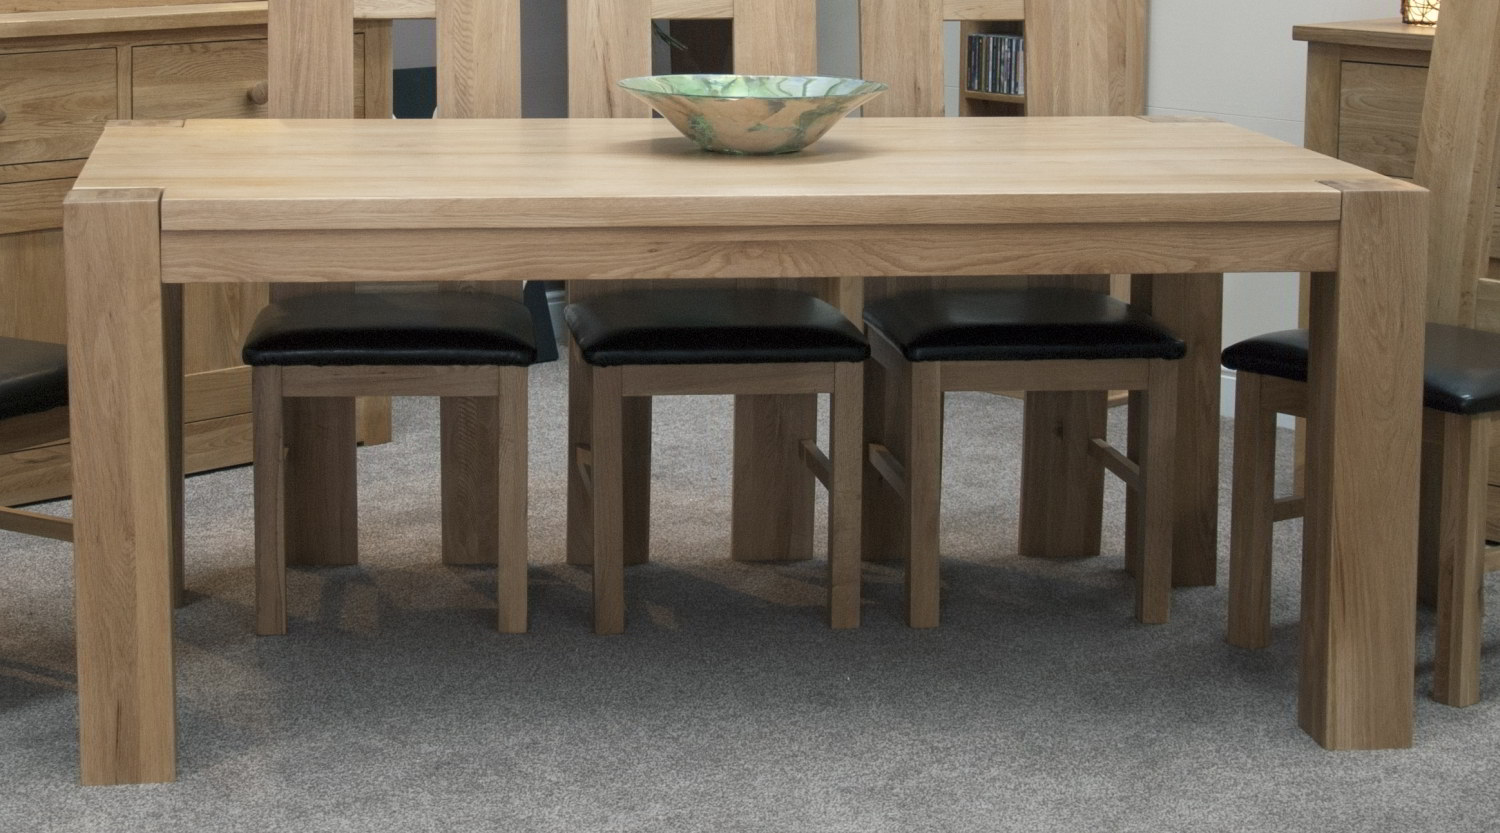 Details about pemberton solid oak dining room furniture large chunky dining table